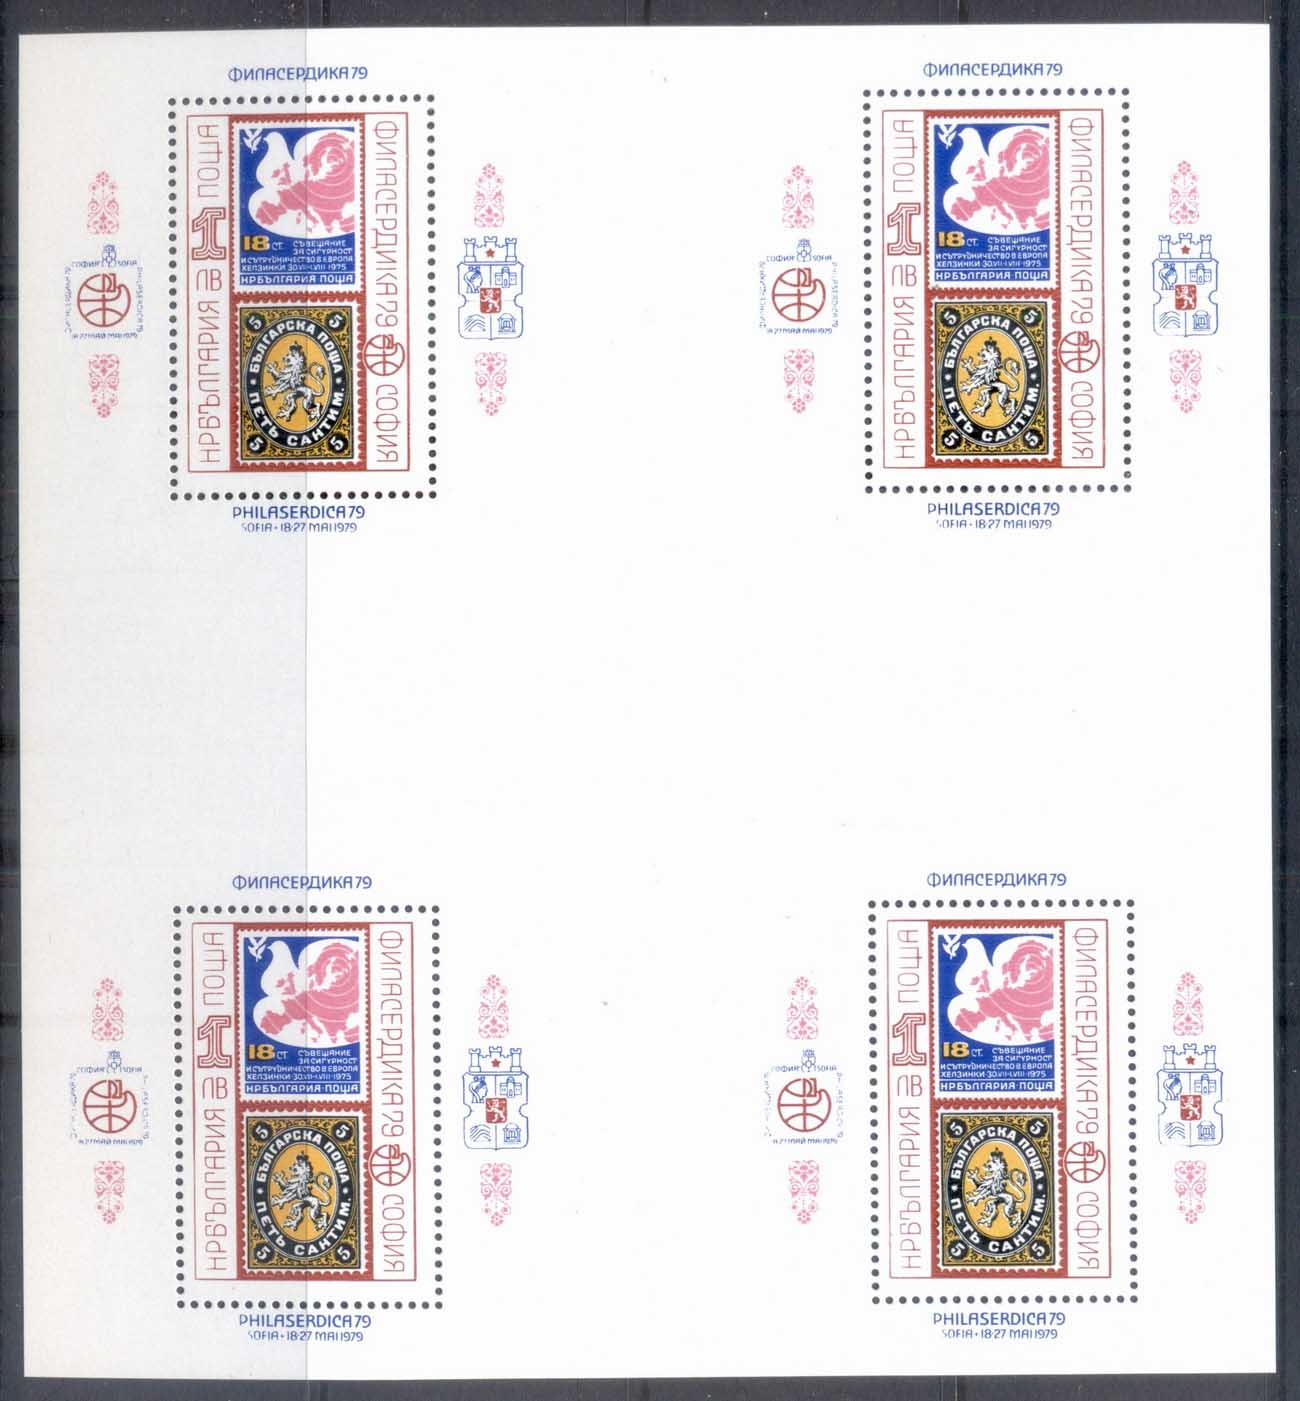 Bulgaria 1979 Philaserdica '79 MS MUH